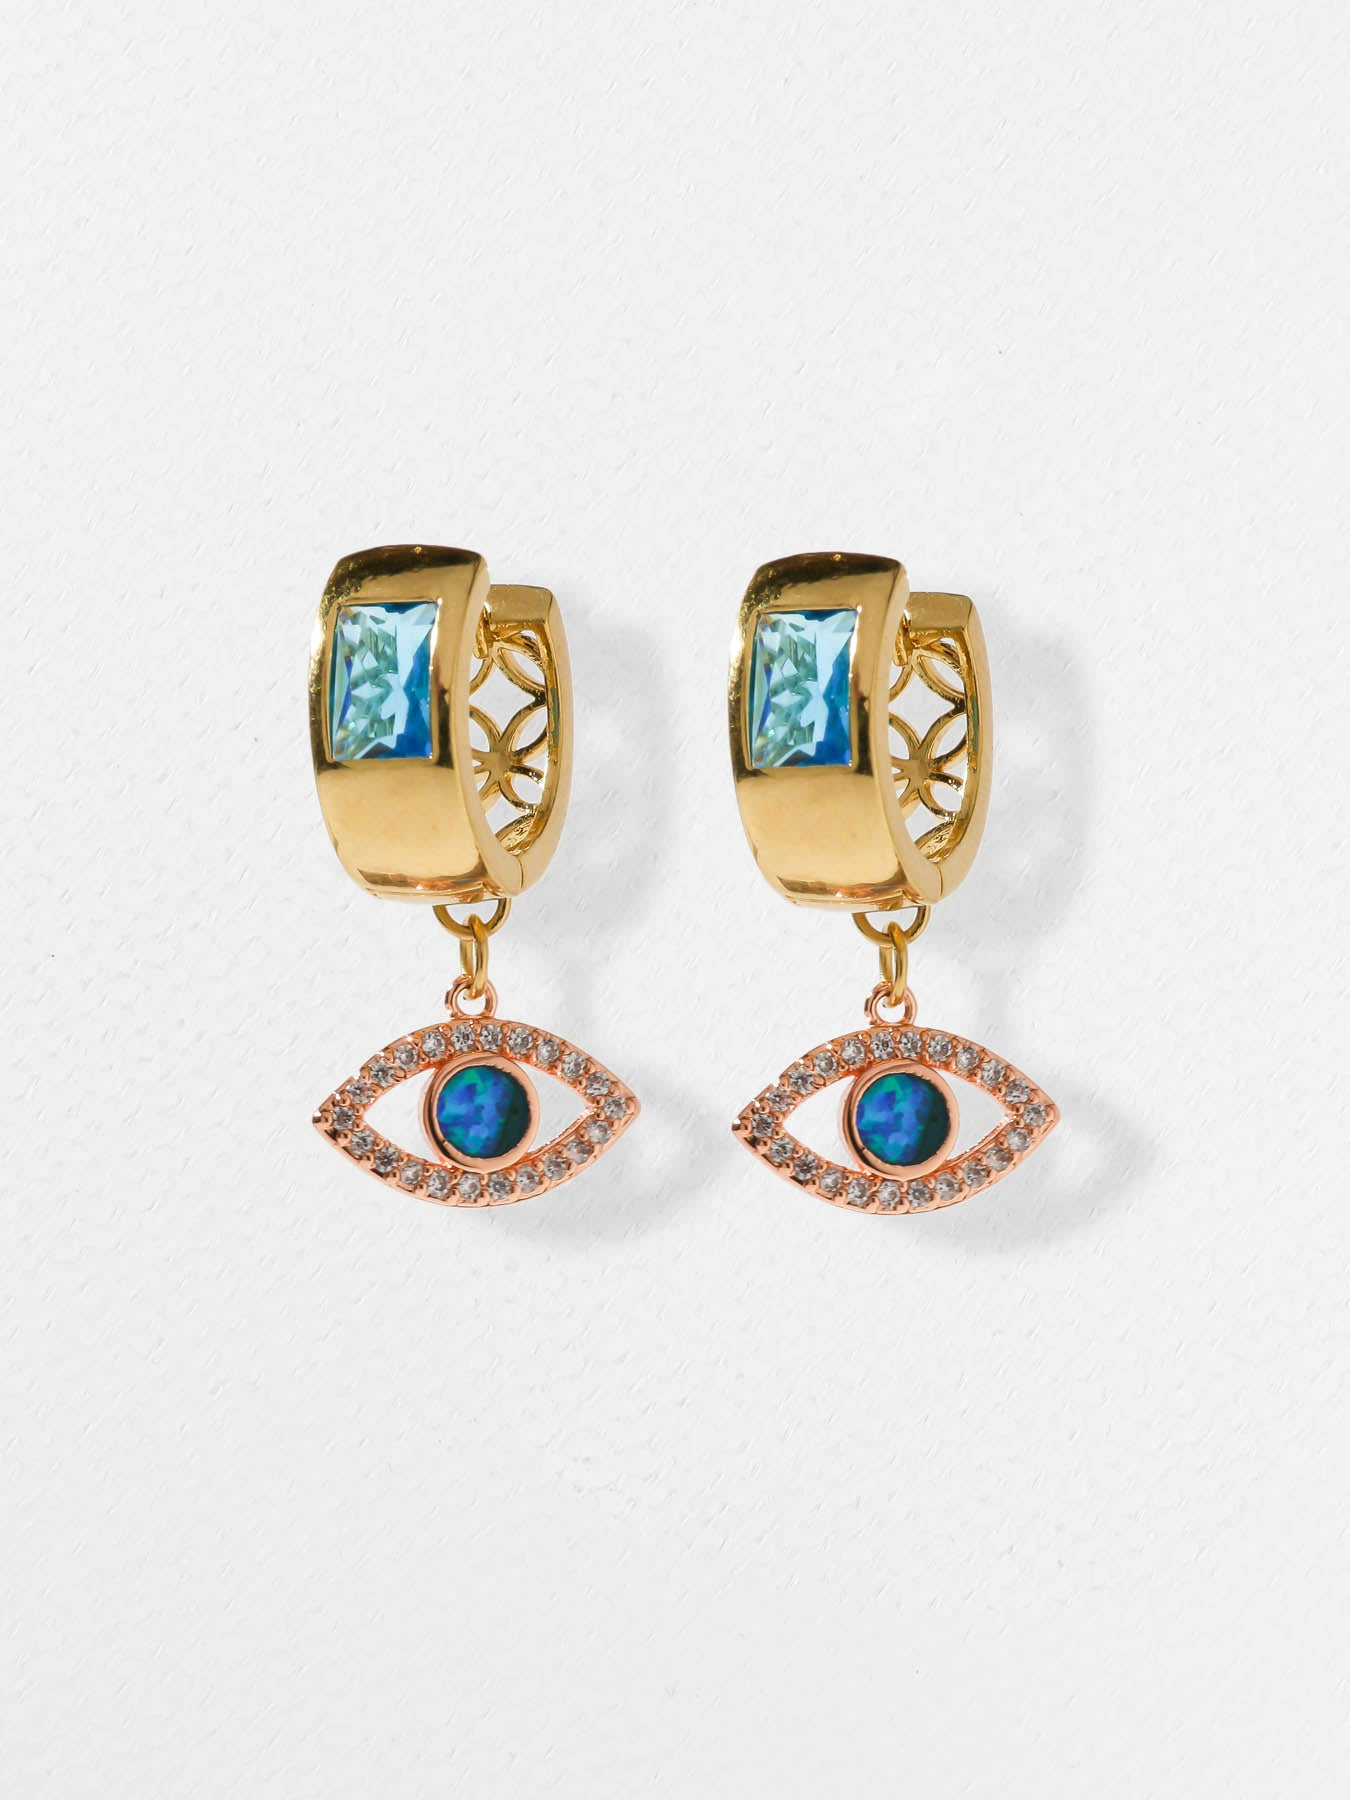 The Iridescent Iris Earrings